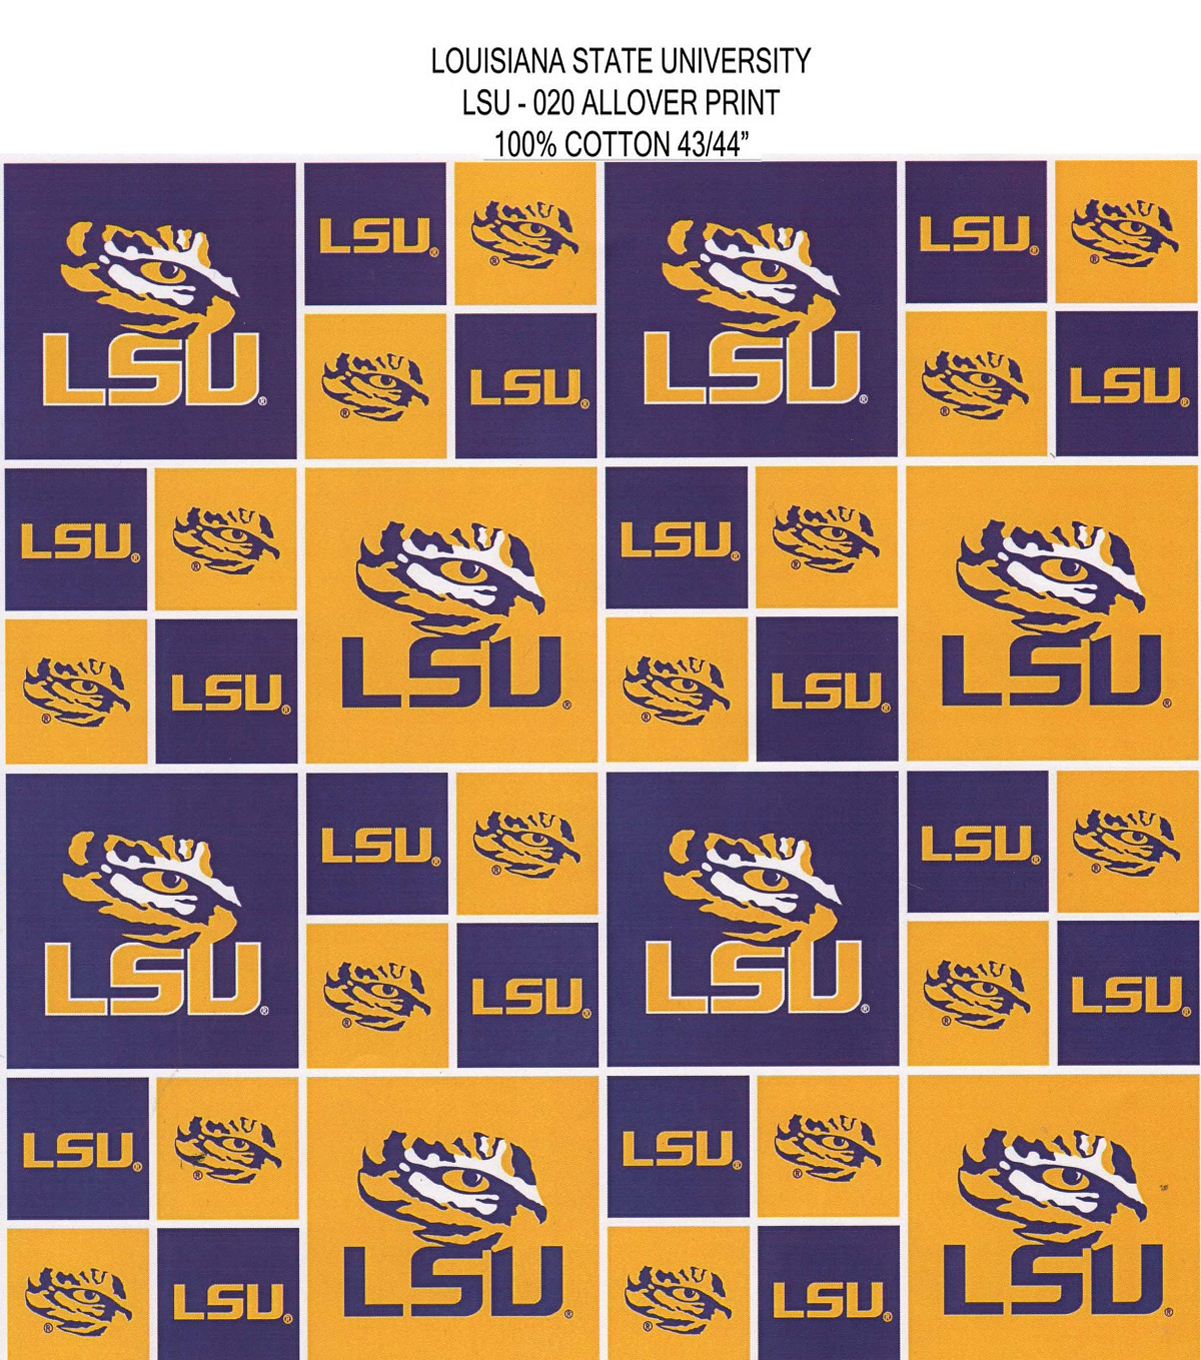 Louisiana State University Tigers Cotton Fabric 43